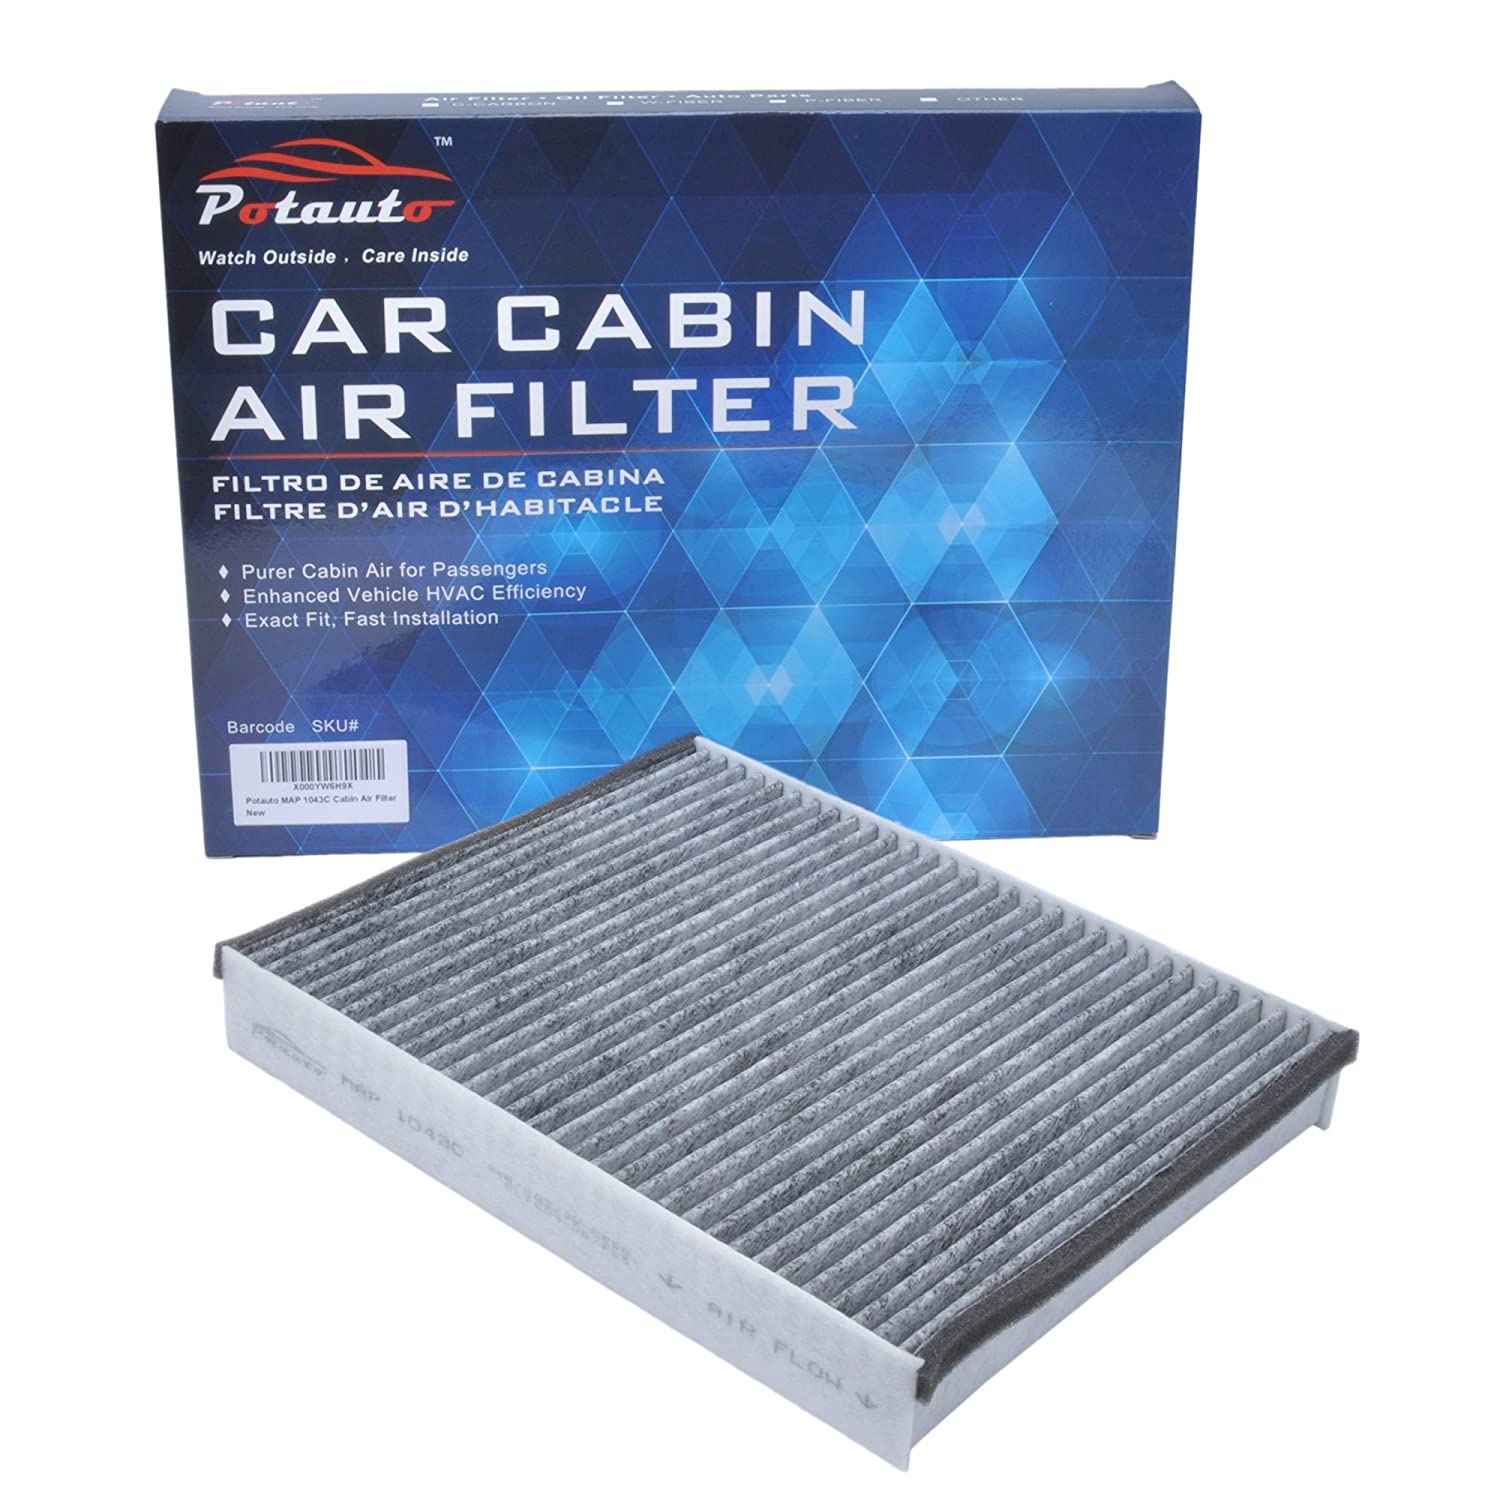 POTAUTO MAP 1043C Heavy Activated Carbon Car Cabin Air Filter Replacement compatible with FORD, C-MAX, ESCAPE, Focus, Transit Connect, LINCOLN, MKC (Upgraded with Active Carbon)